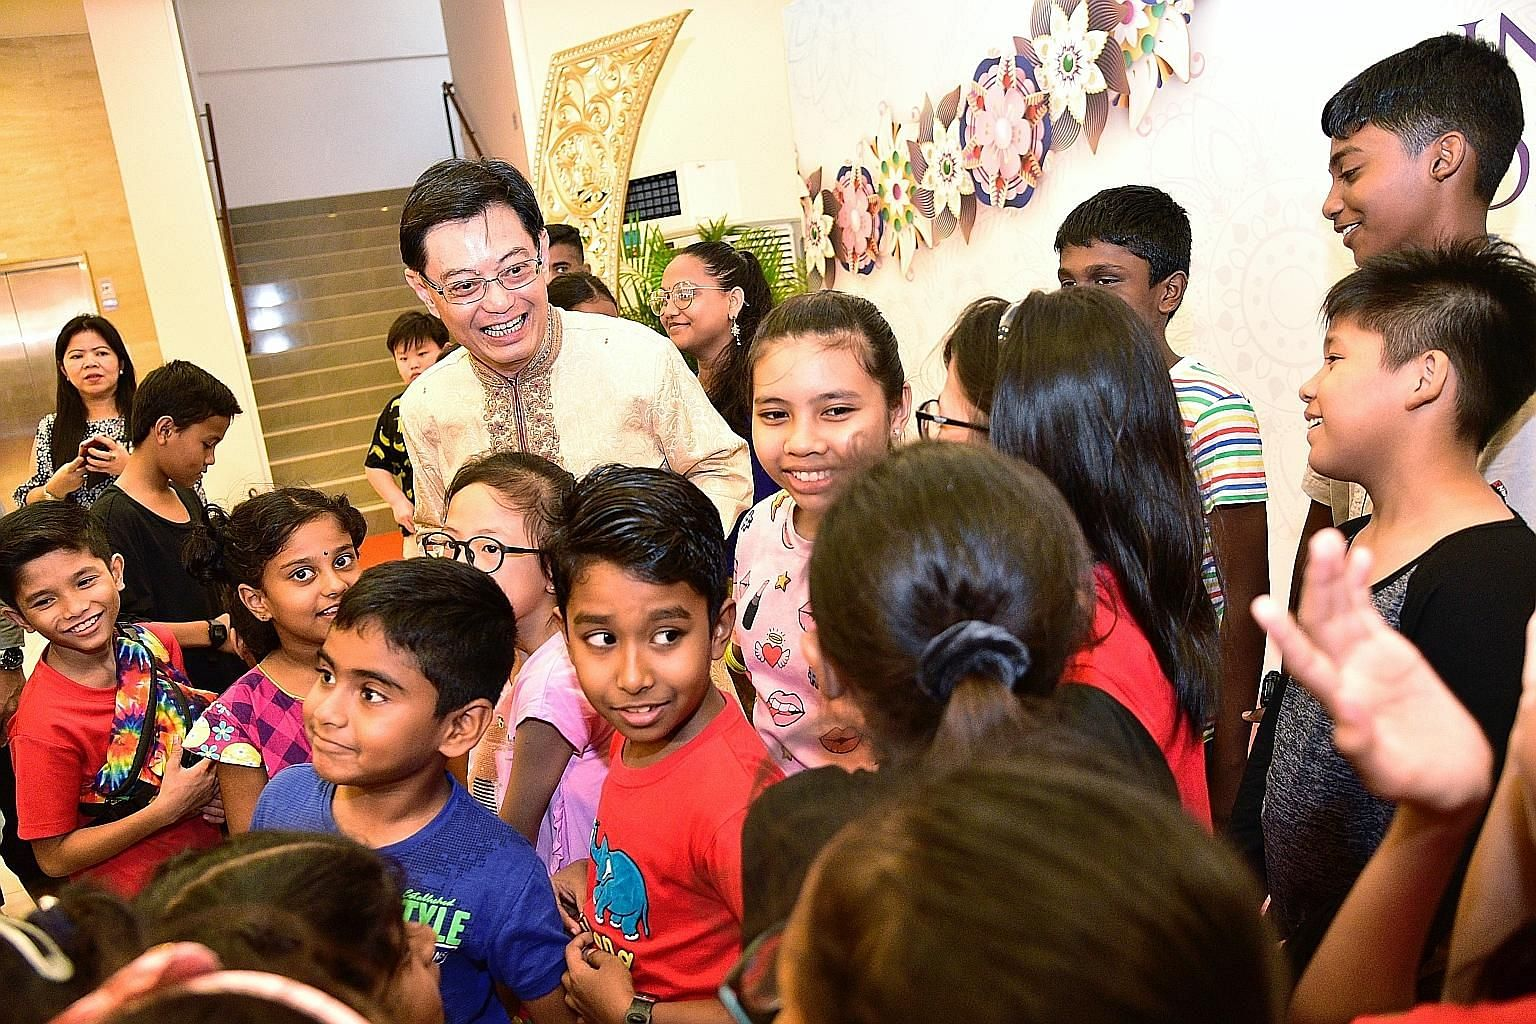 Deputy Prime Minister Heng Swee Keat with children from Sunlove Home during the largest interfaith leaders' Deepavali celebration at PGP Hall in Serangoon Road yesterday. Mr Heng, who is also Finance Minister, joined 150 guests from 10 different fait